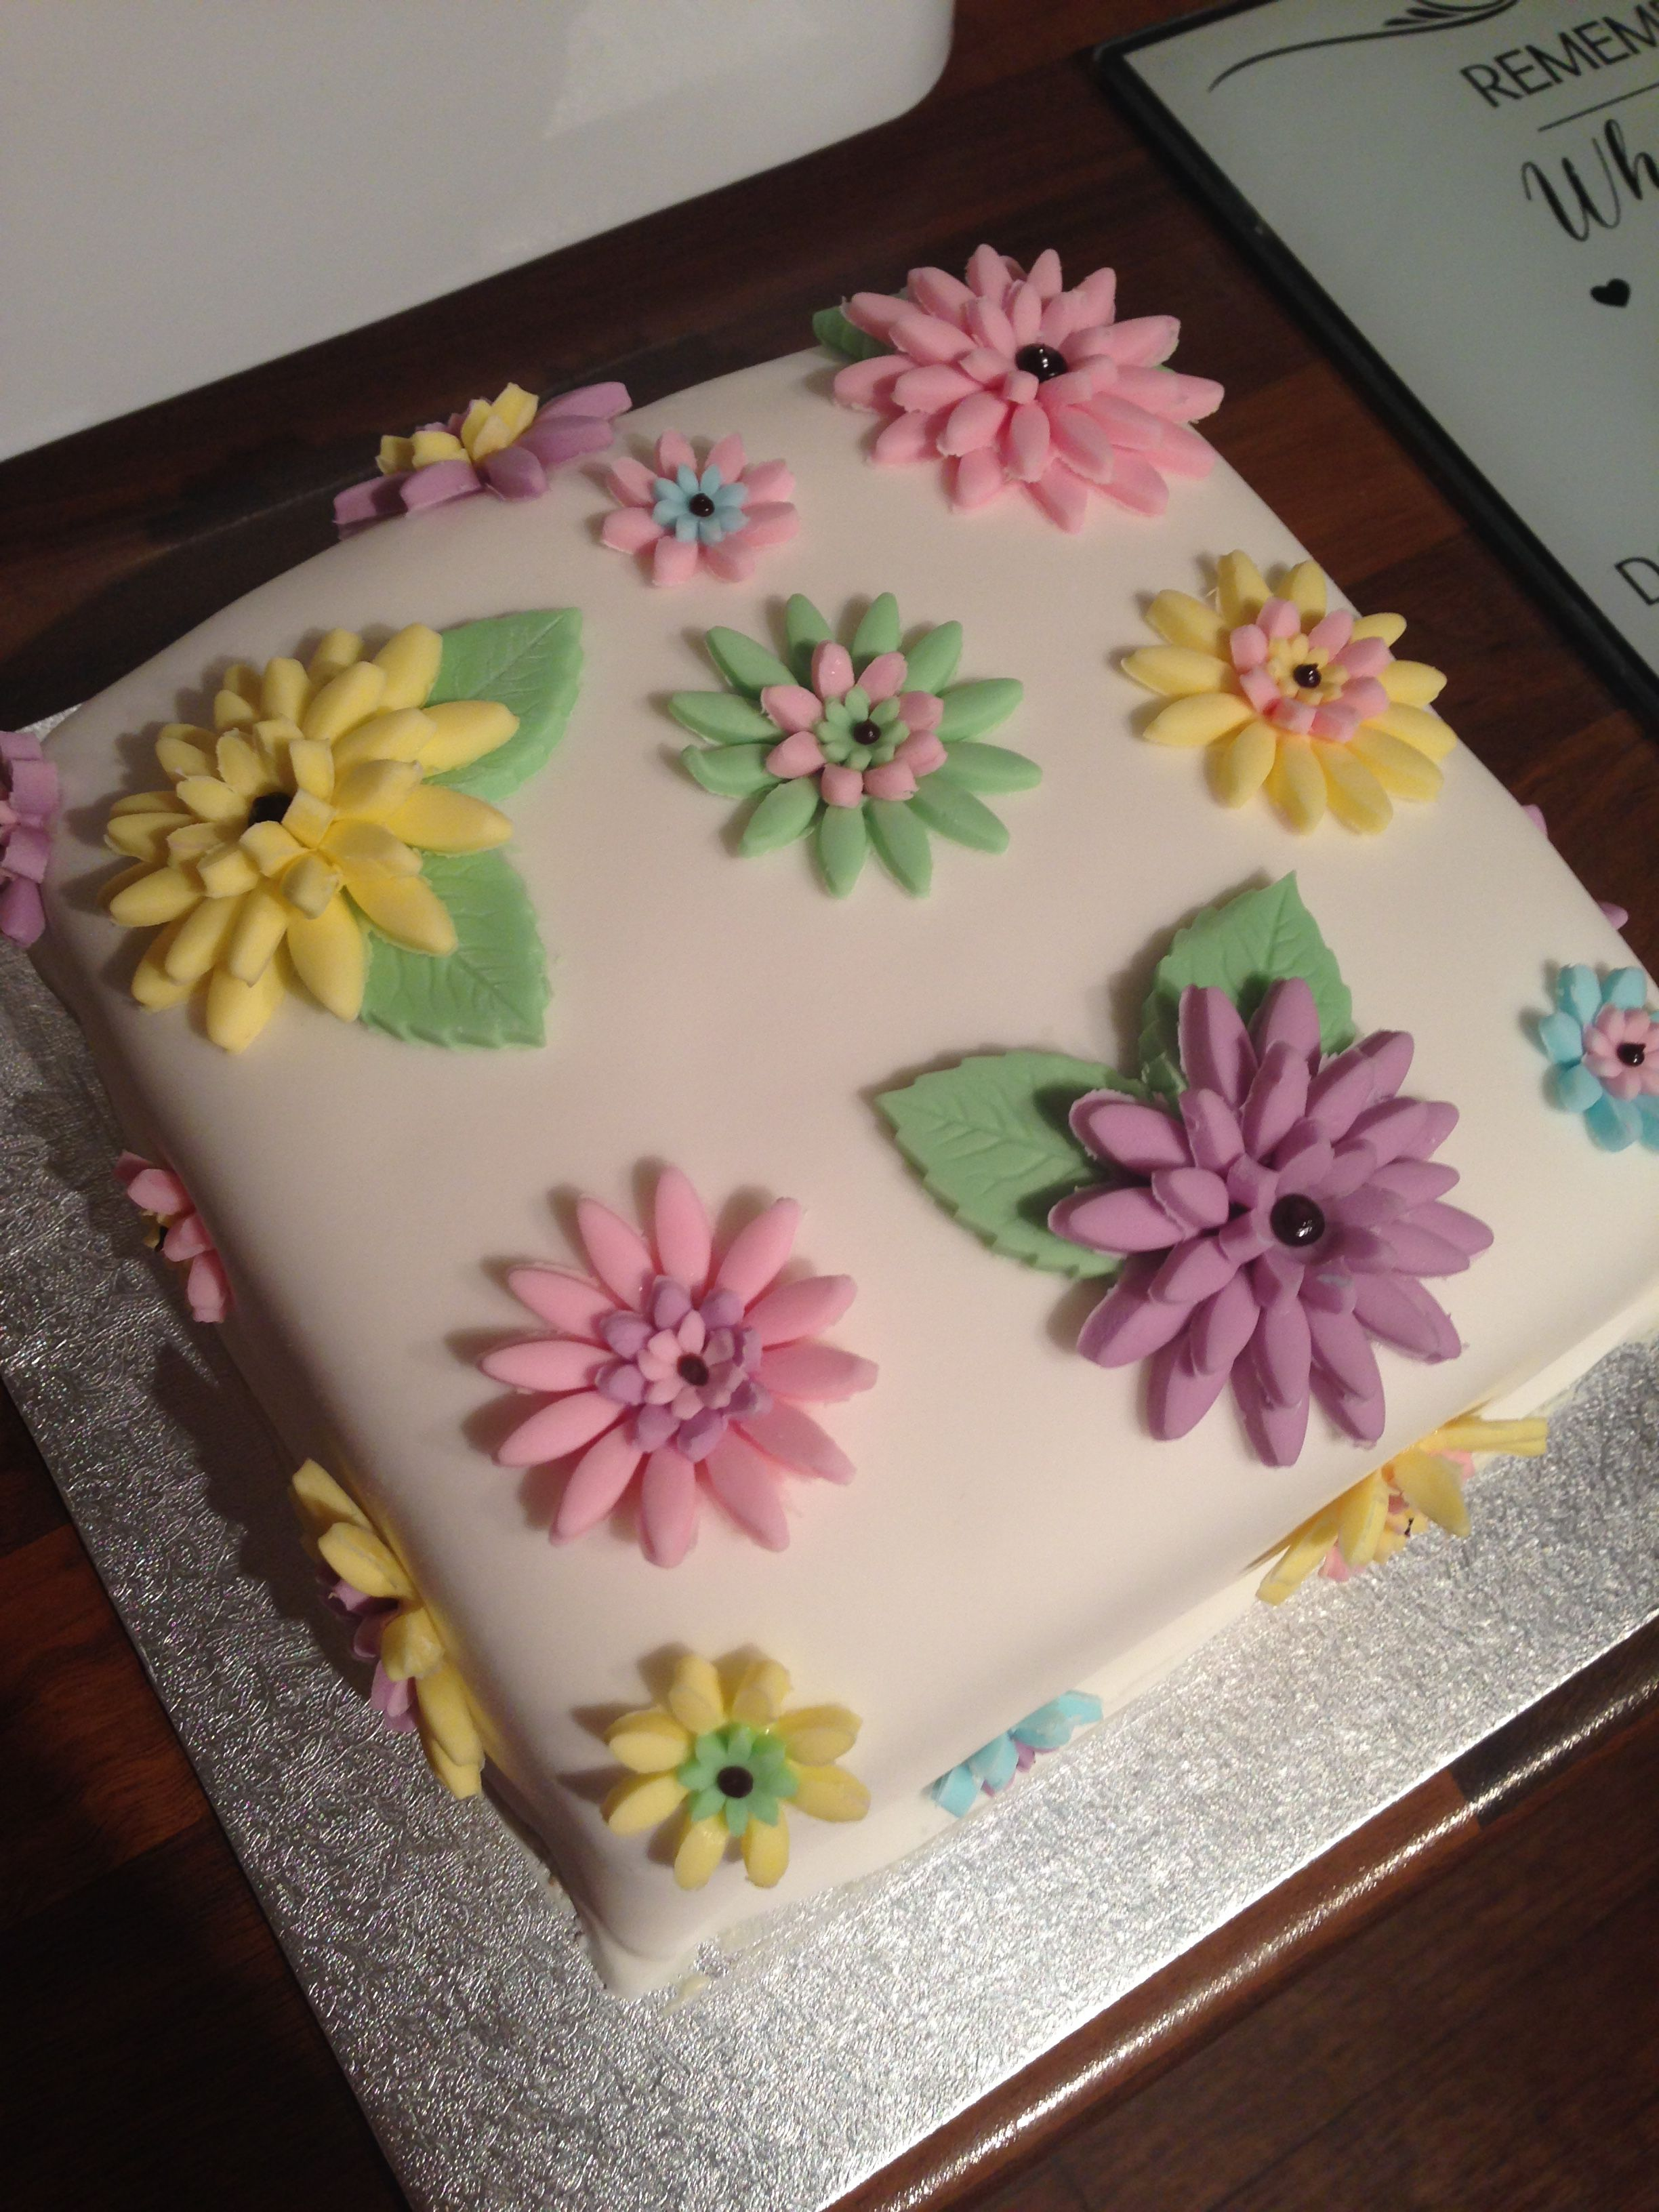 Red velvet and white chocolate buttercream cake cover in icing and flowers 🌸